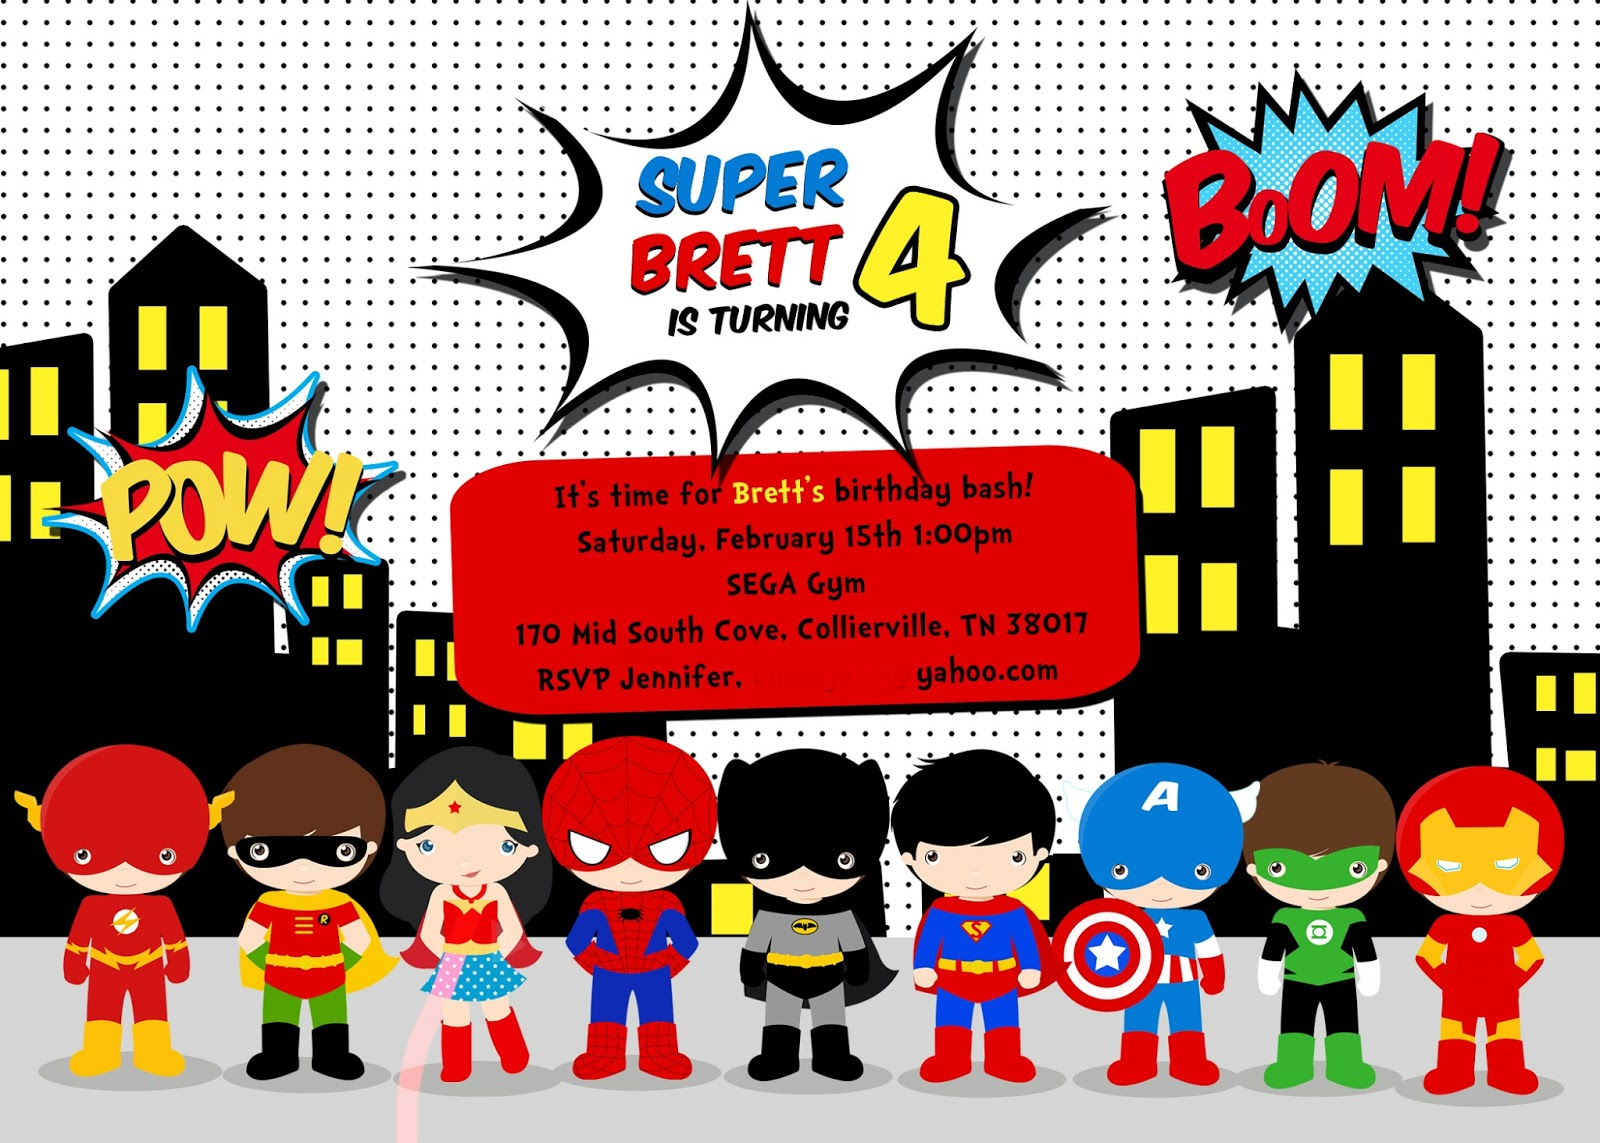 Bretts Superhero 4th Birthday Party